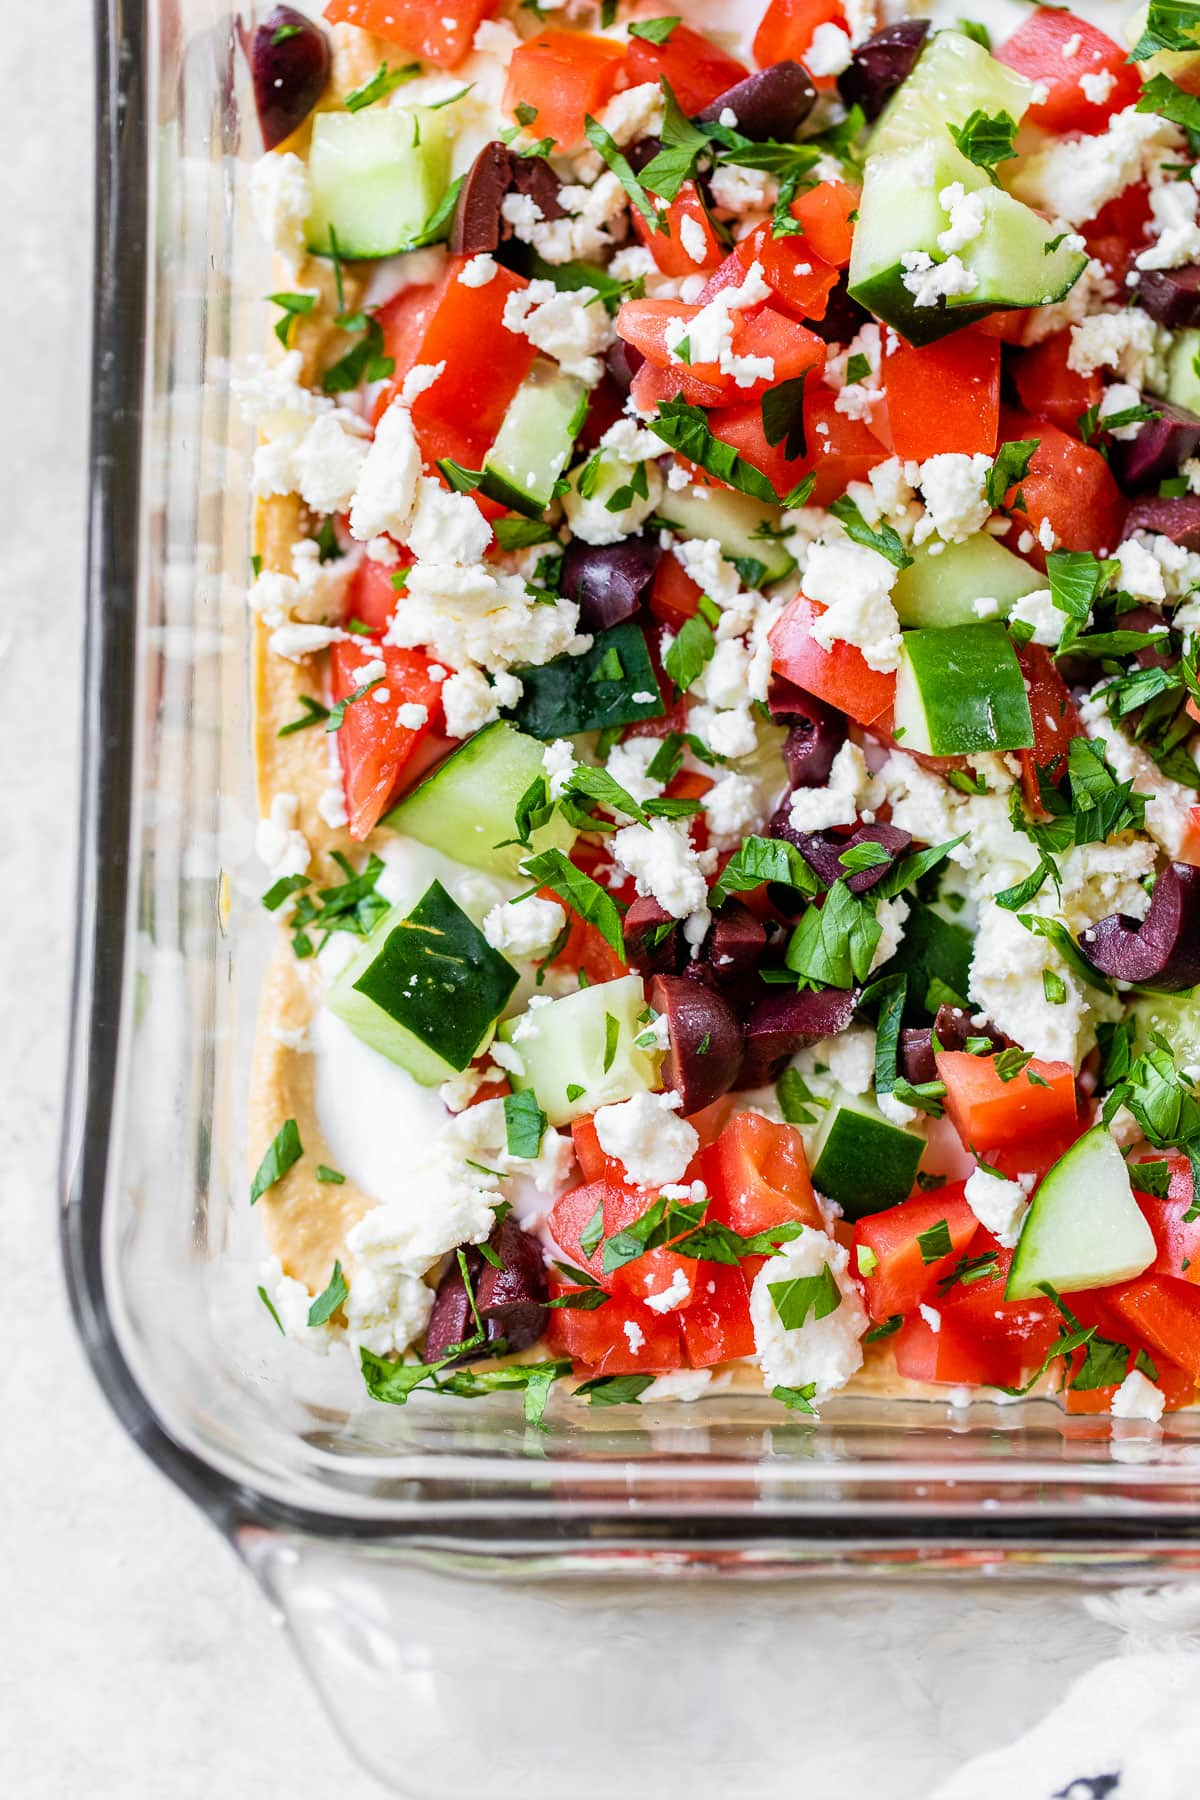 Skinny Greek Layer Dip made with hummus in a glass dish